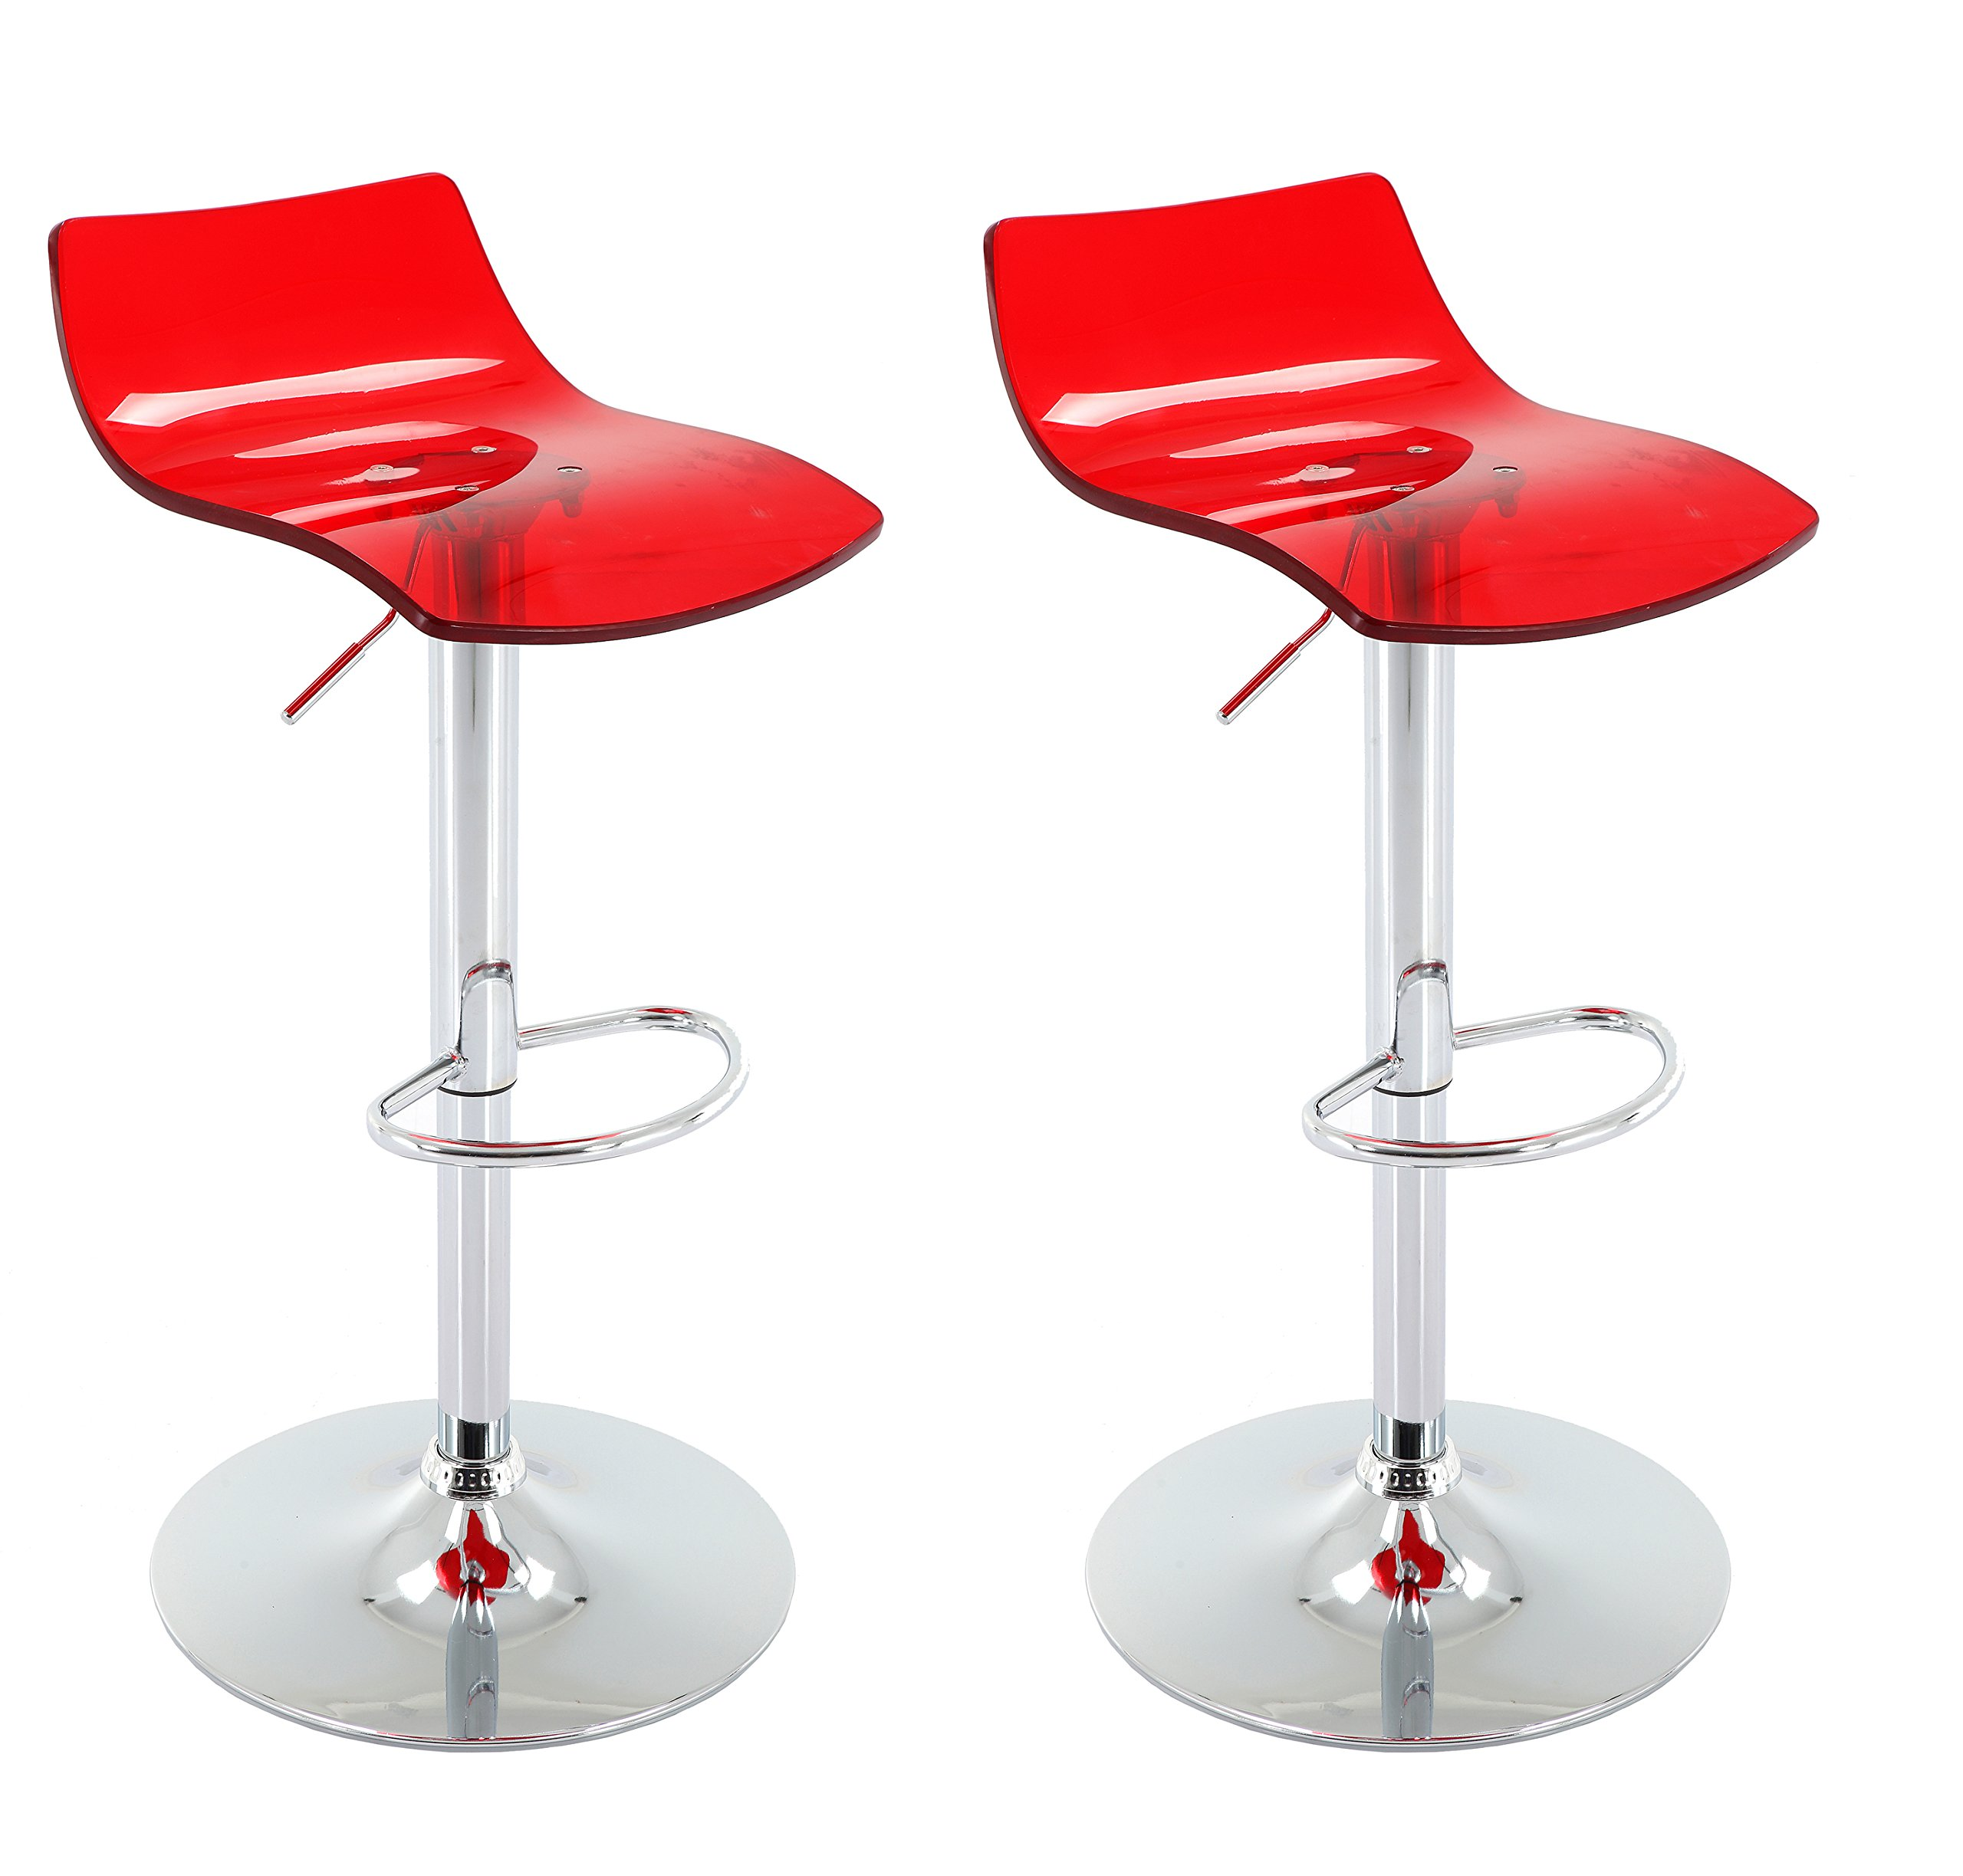 Vogue Furniture Direct Adjustable Arcylic Barstool, Red -VF1581032 (Set of 2)